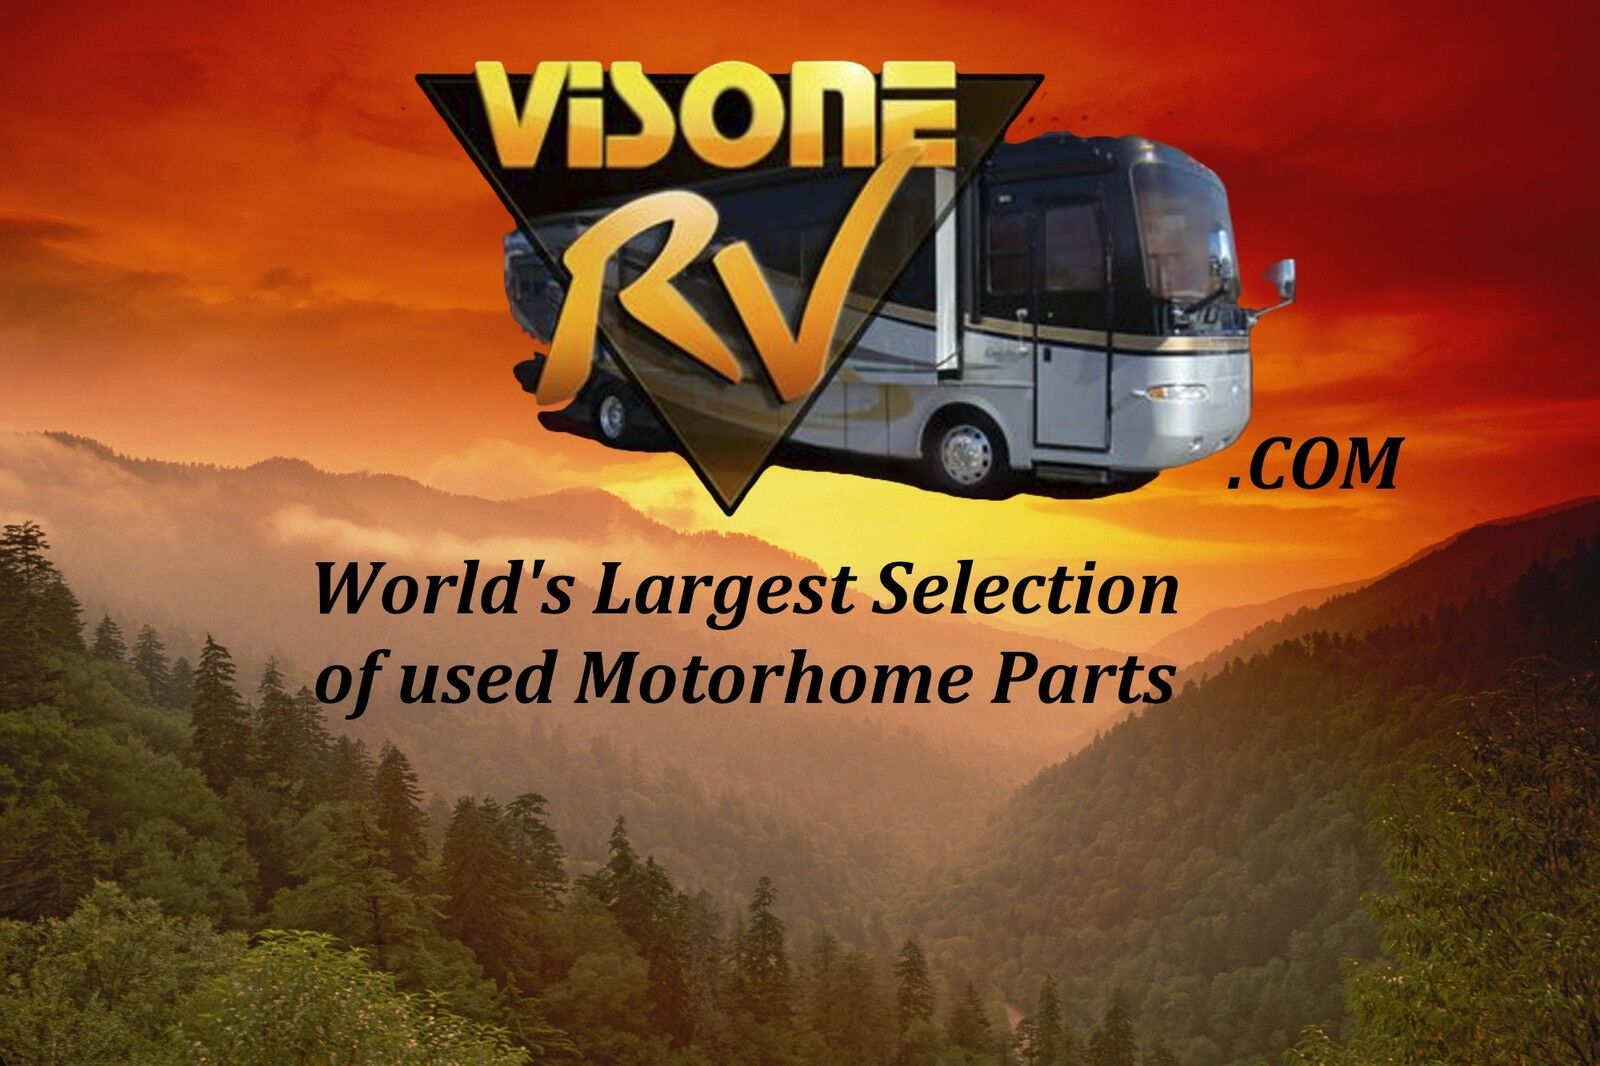 Visone Auto Mart And RV Parts